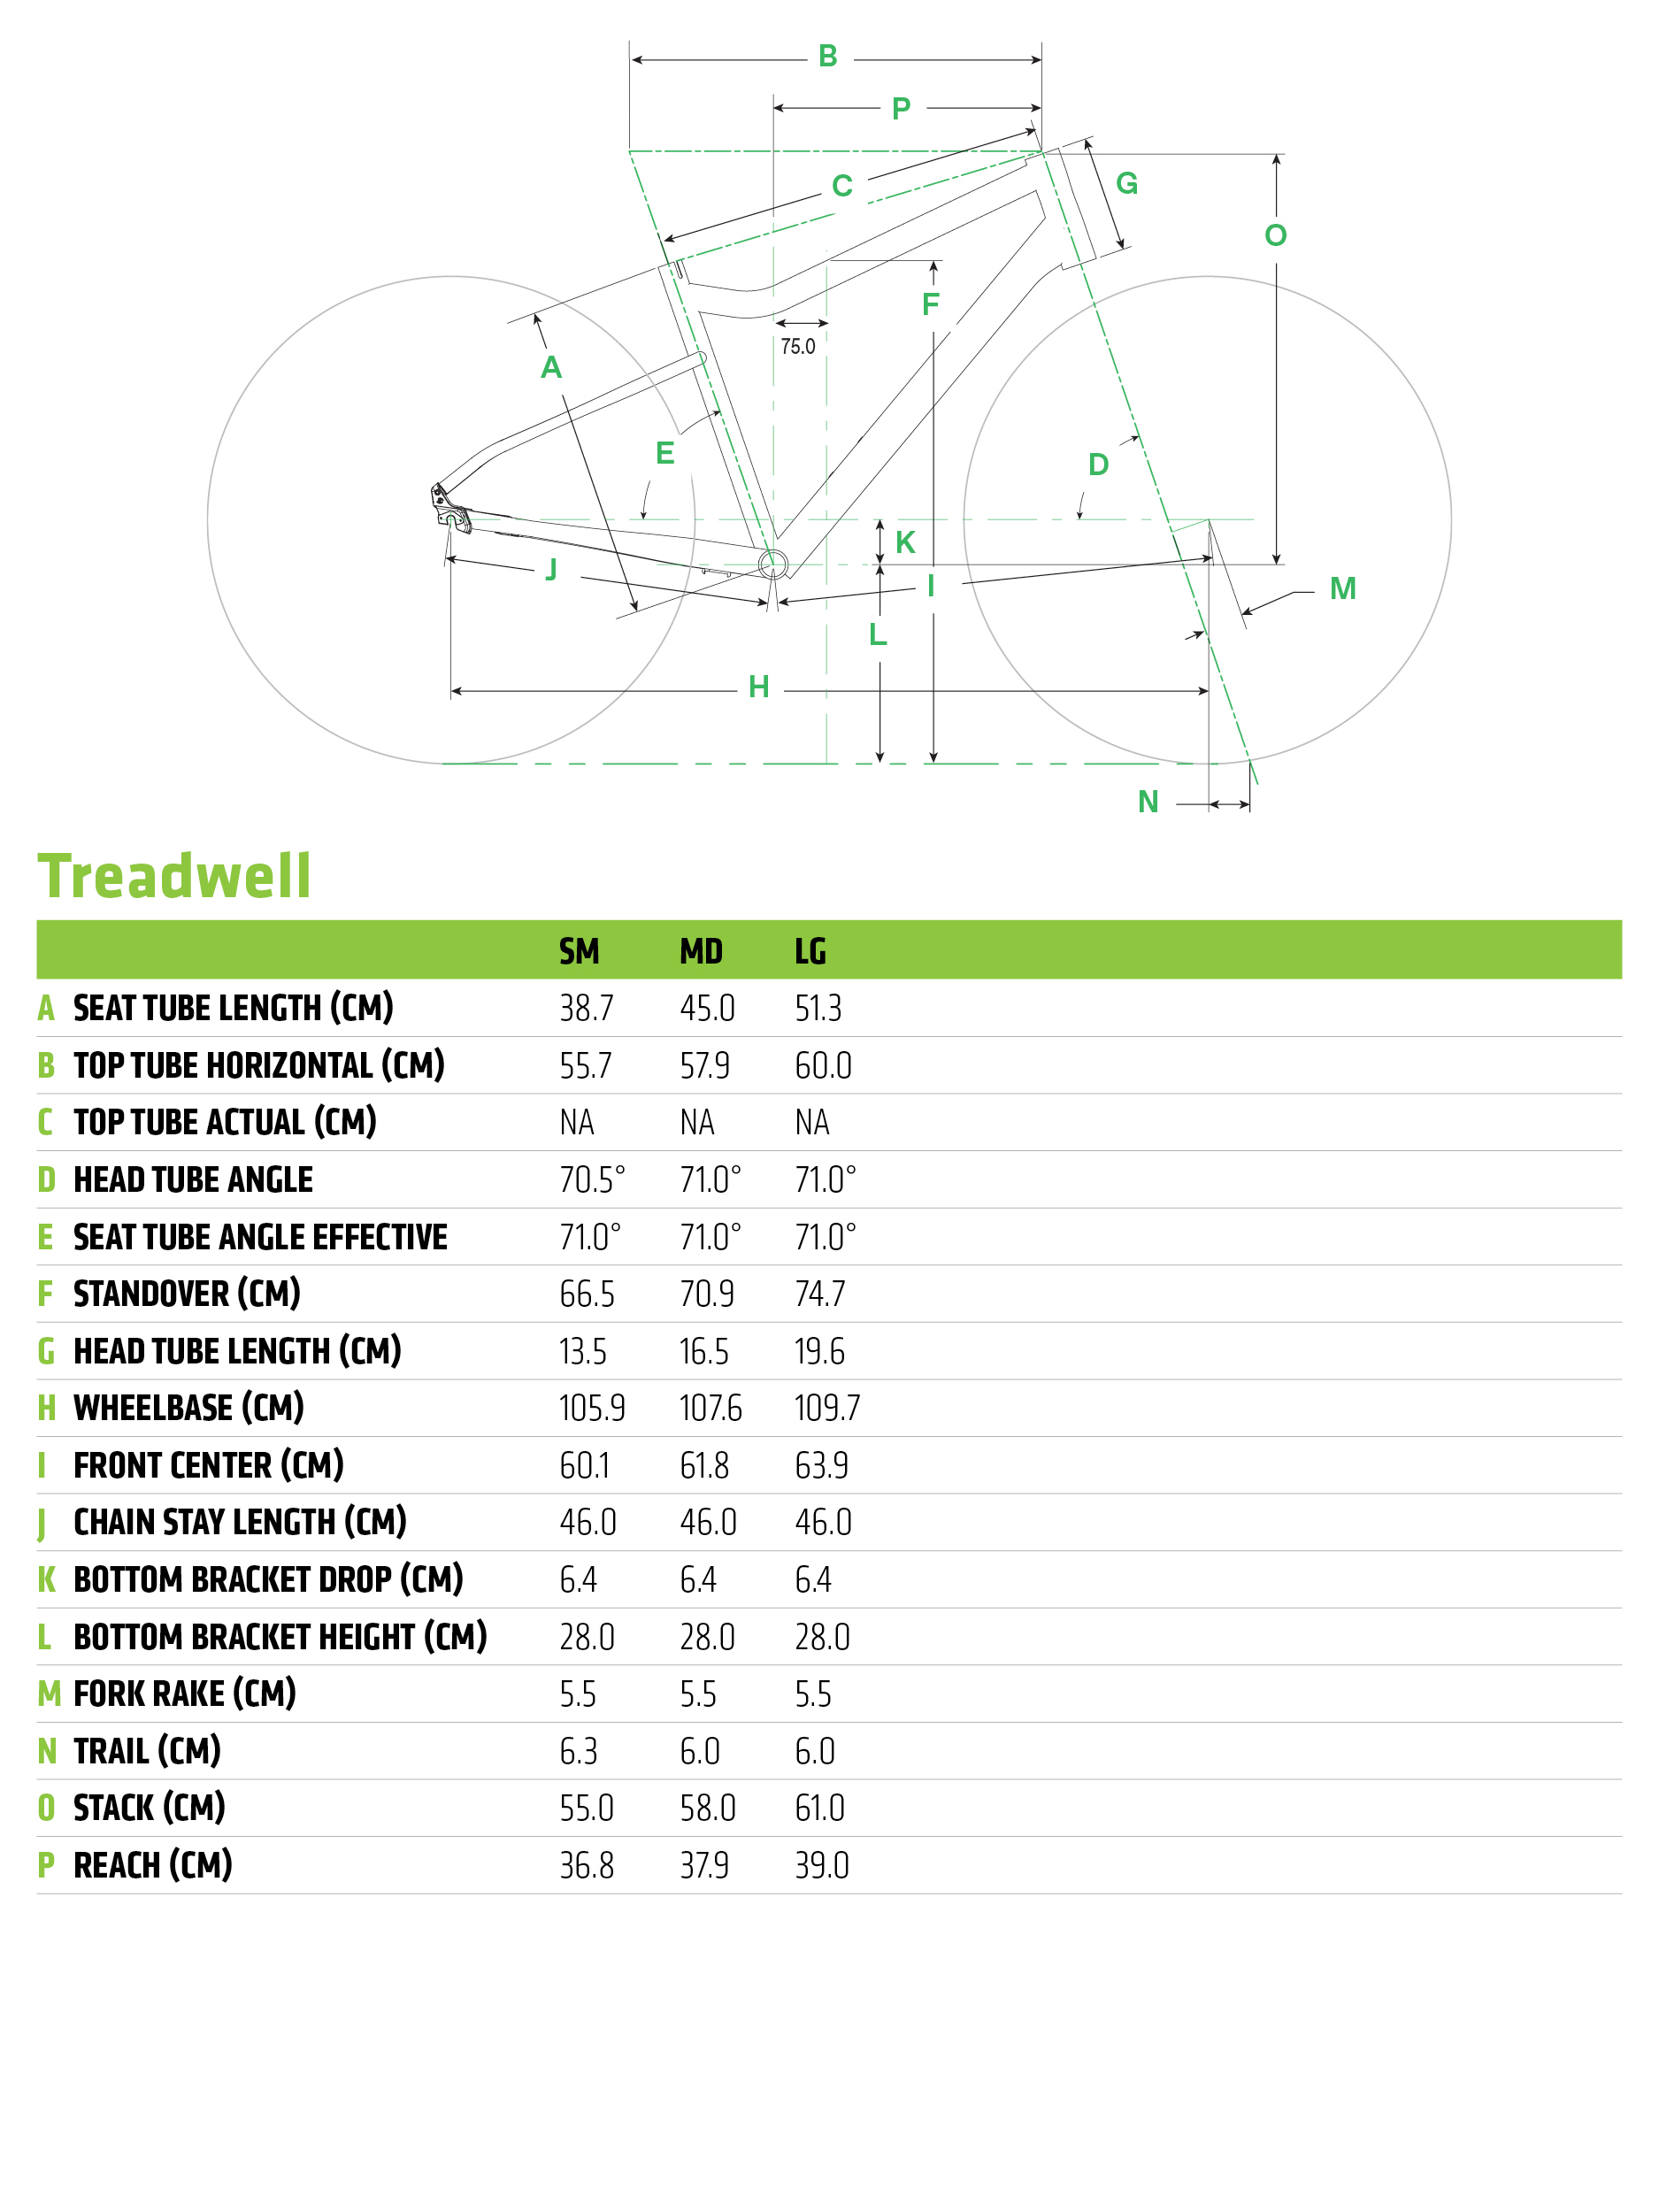 Cannondale Treadwell geometry chart